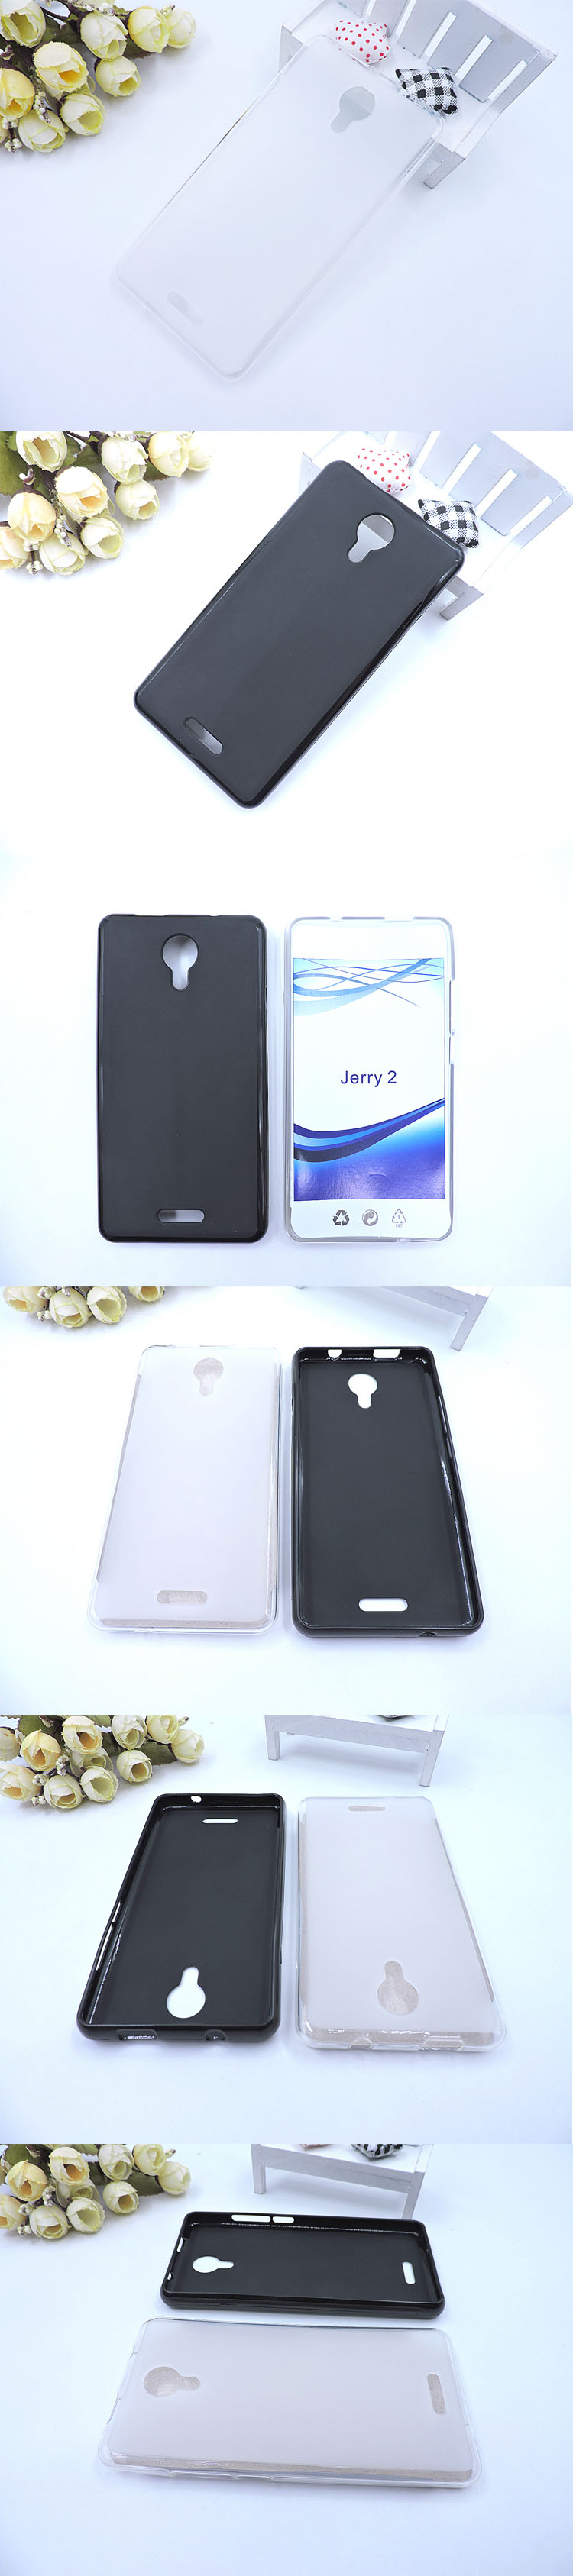 Wiko Jerry2 1